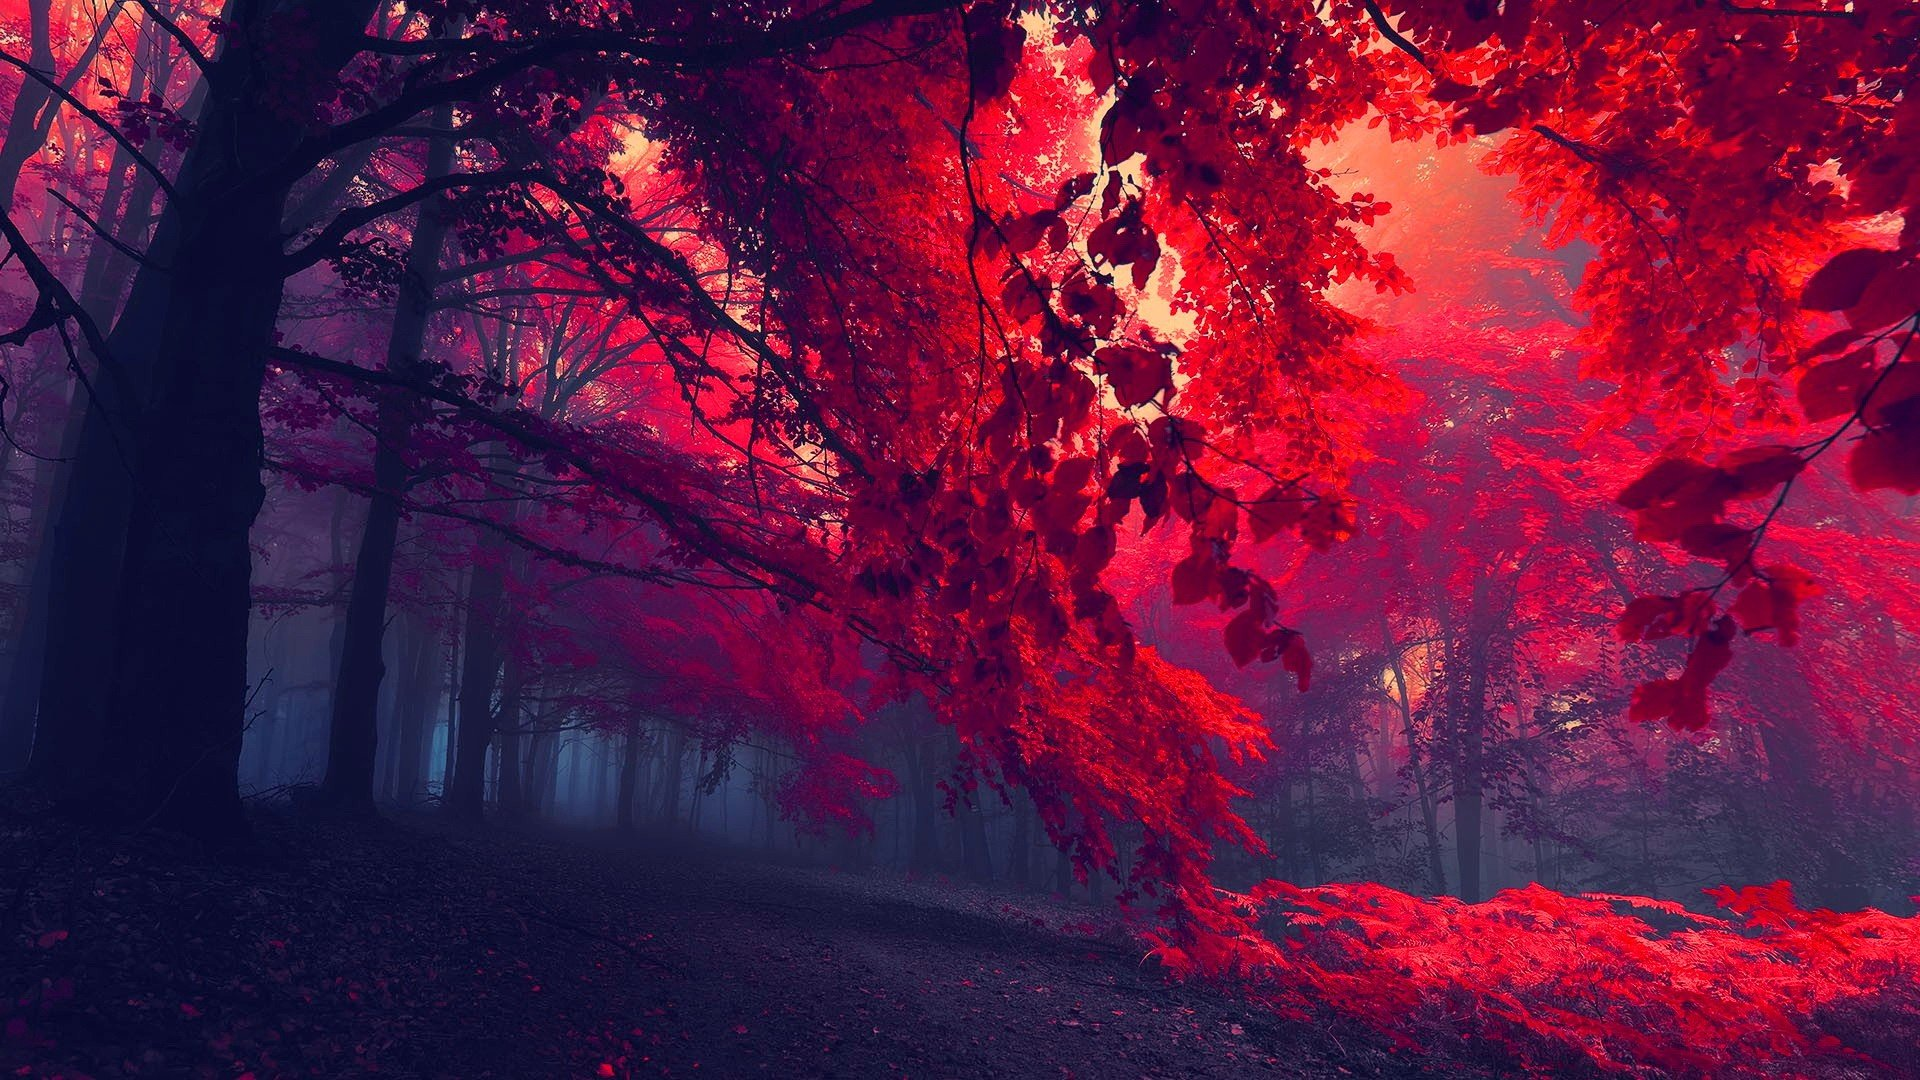 forests nature trees magic fall-autumn leaves red wallpaper